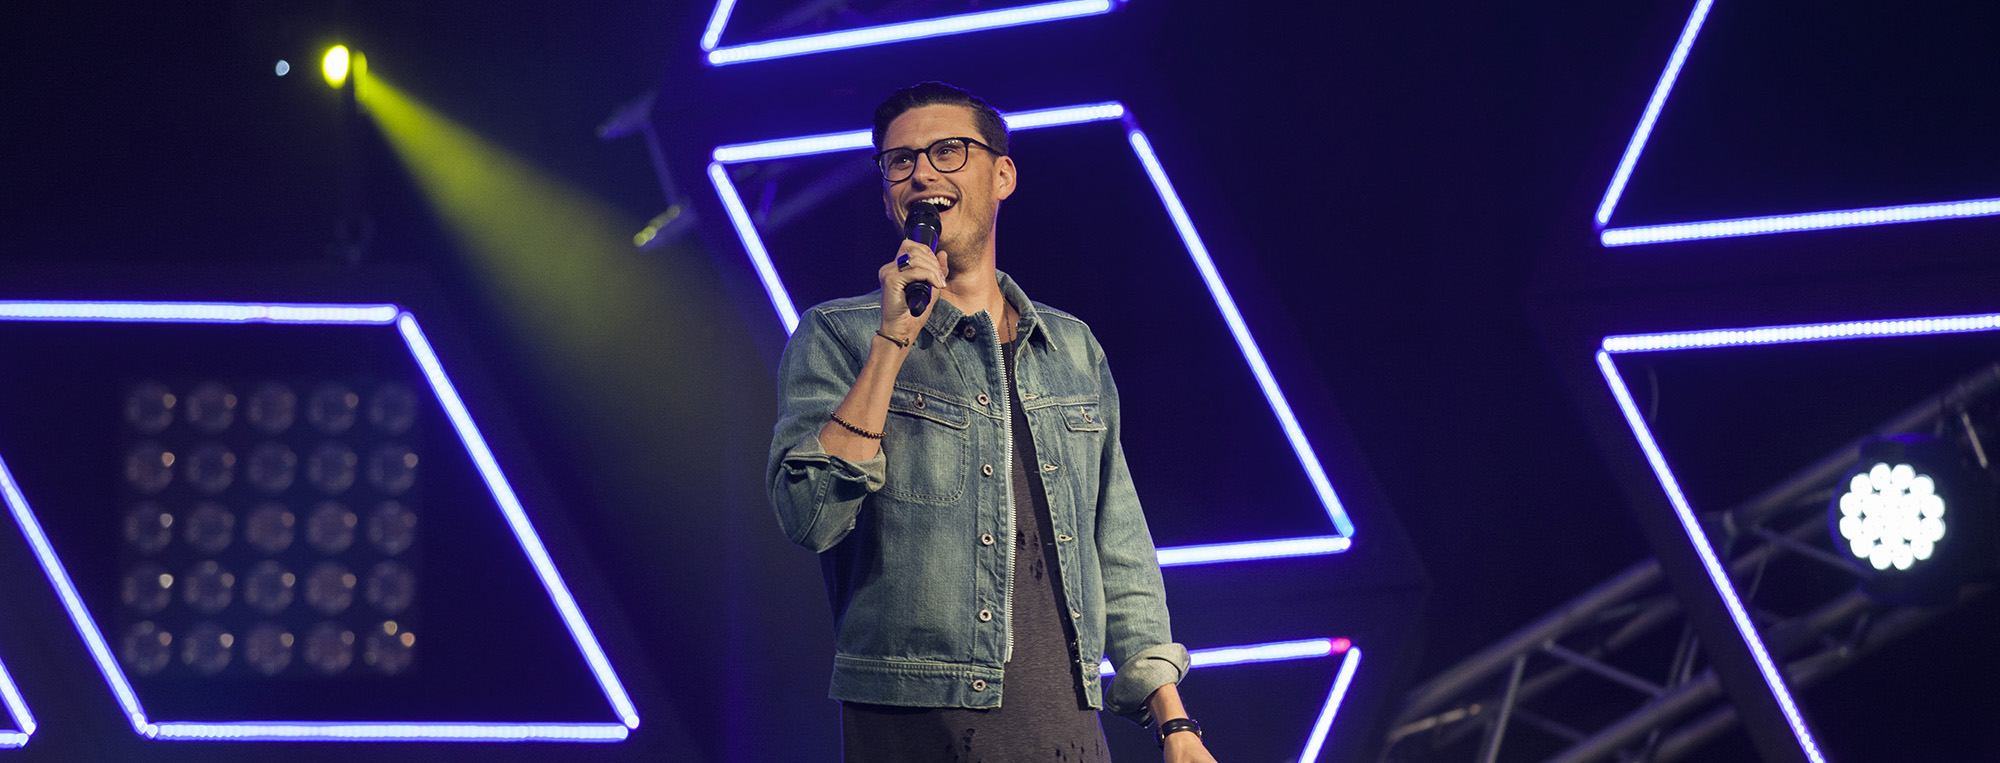 Chad Veach, Pastor Zoe Church, LA